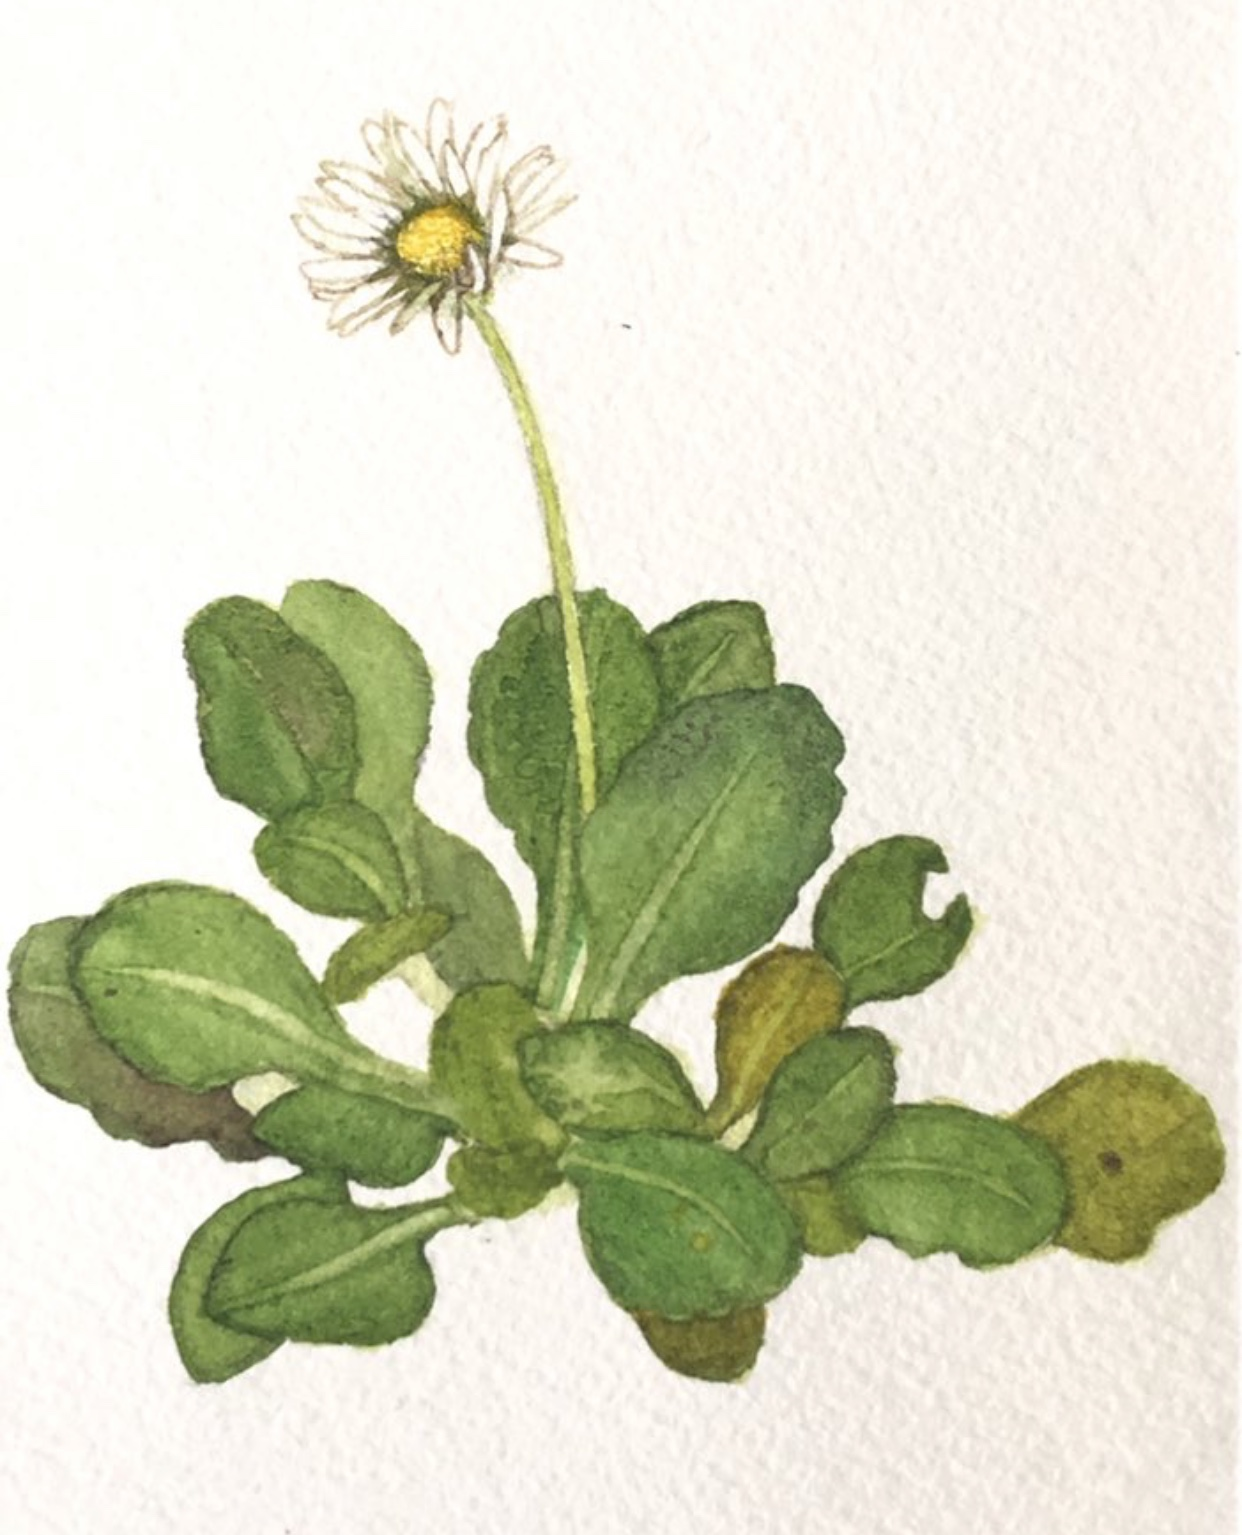 Daisy – Cohort 4 – Our floral emblem; the connection